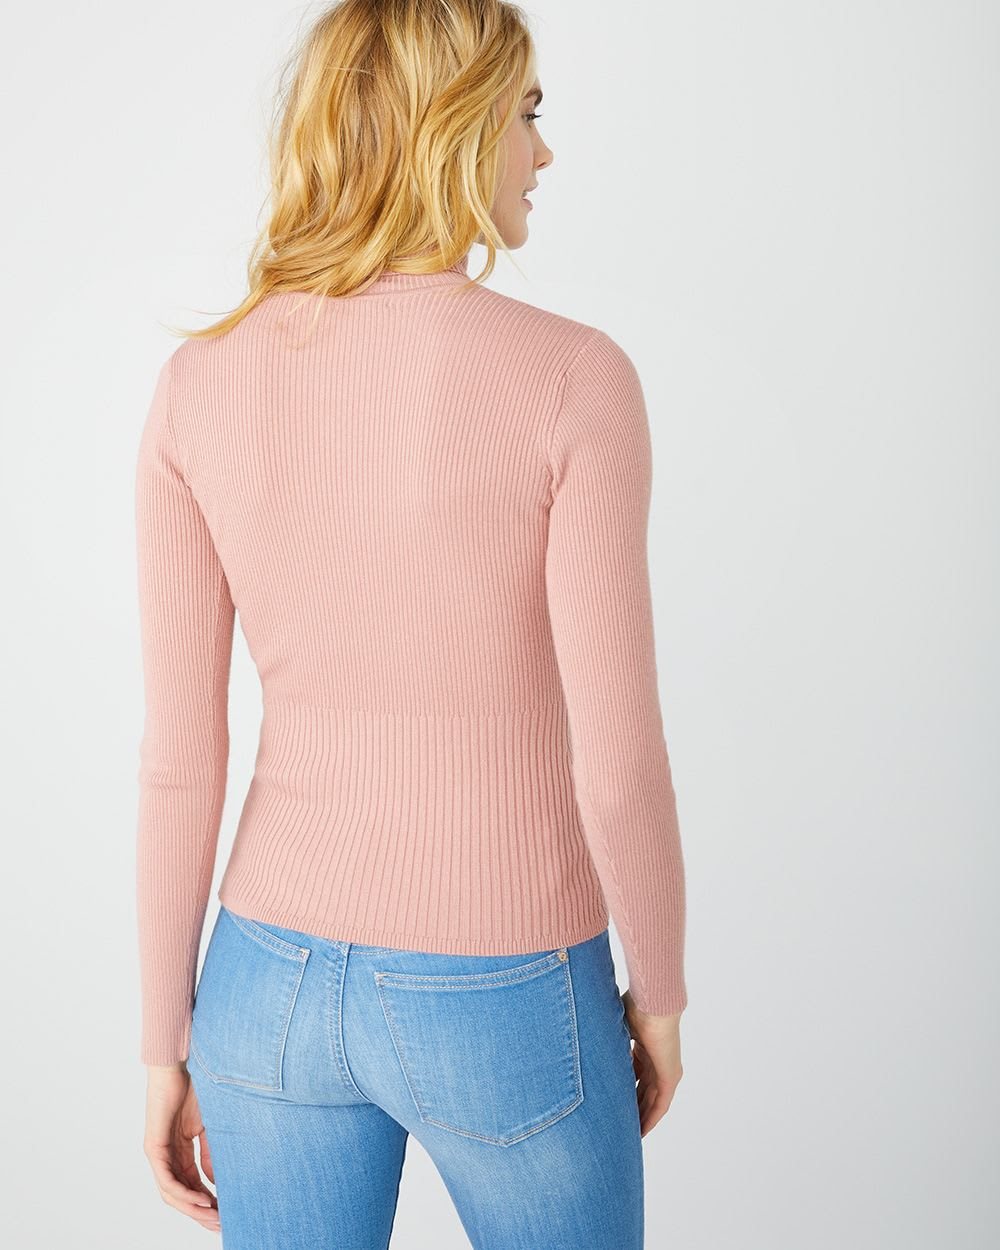 Fitted turtleneck sweater